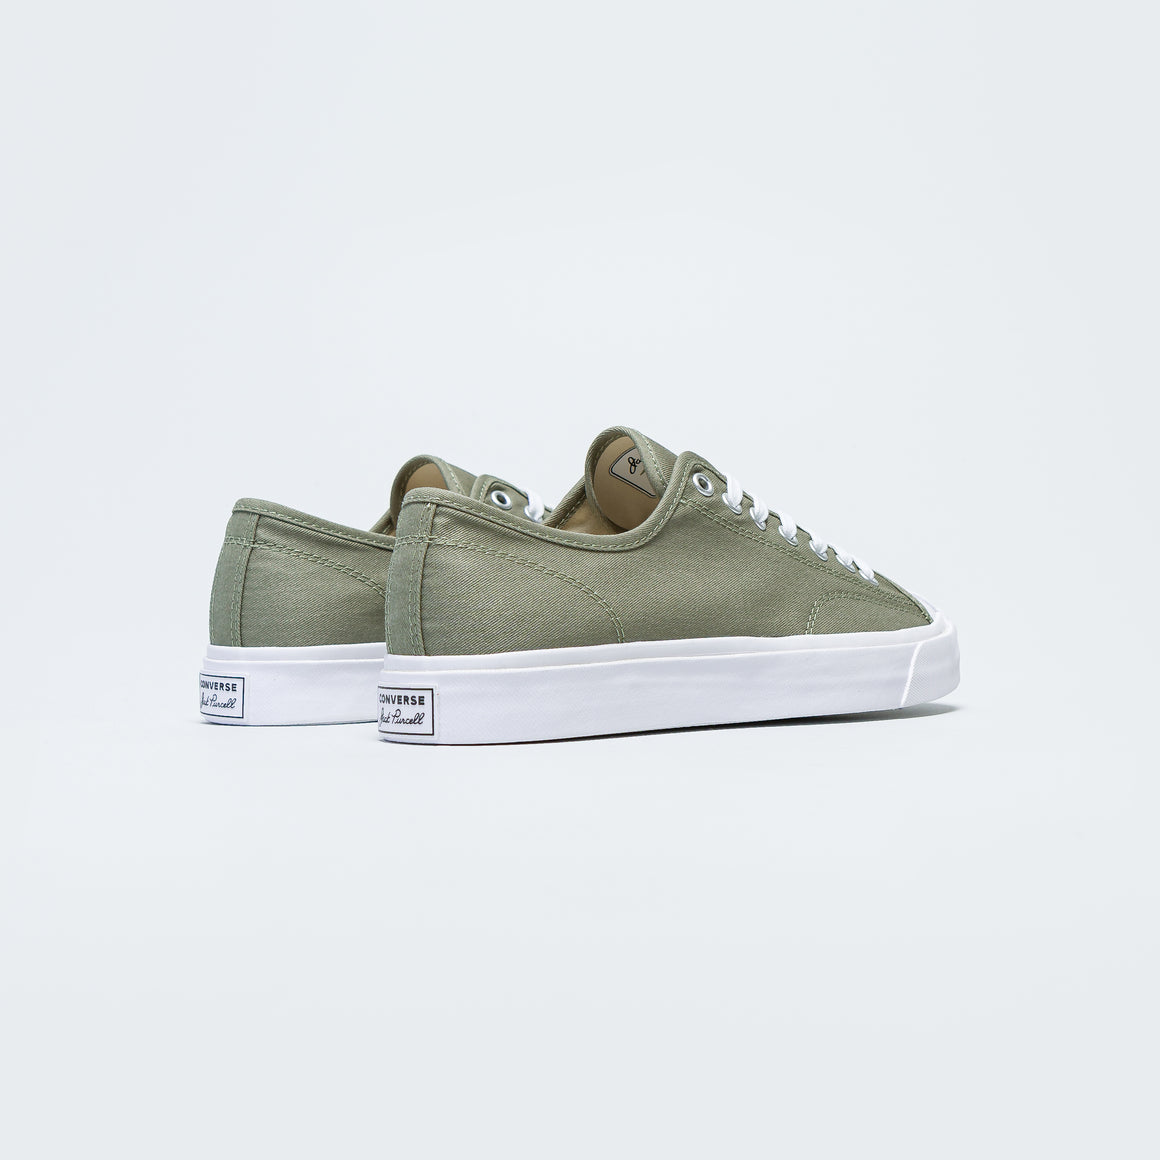 Converse - JP Low - Field Surplus/White - Up There